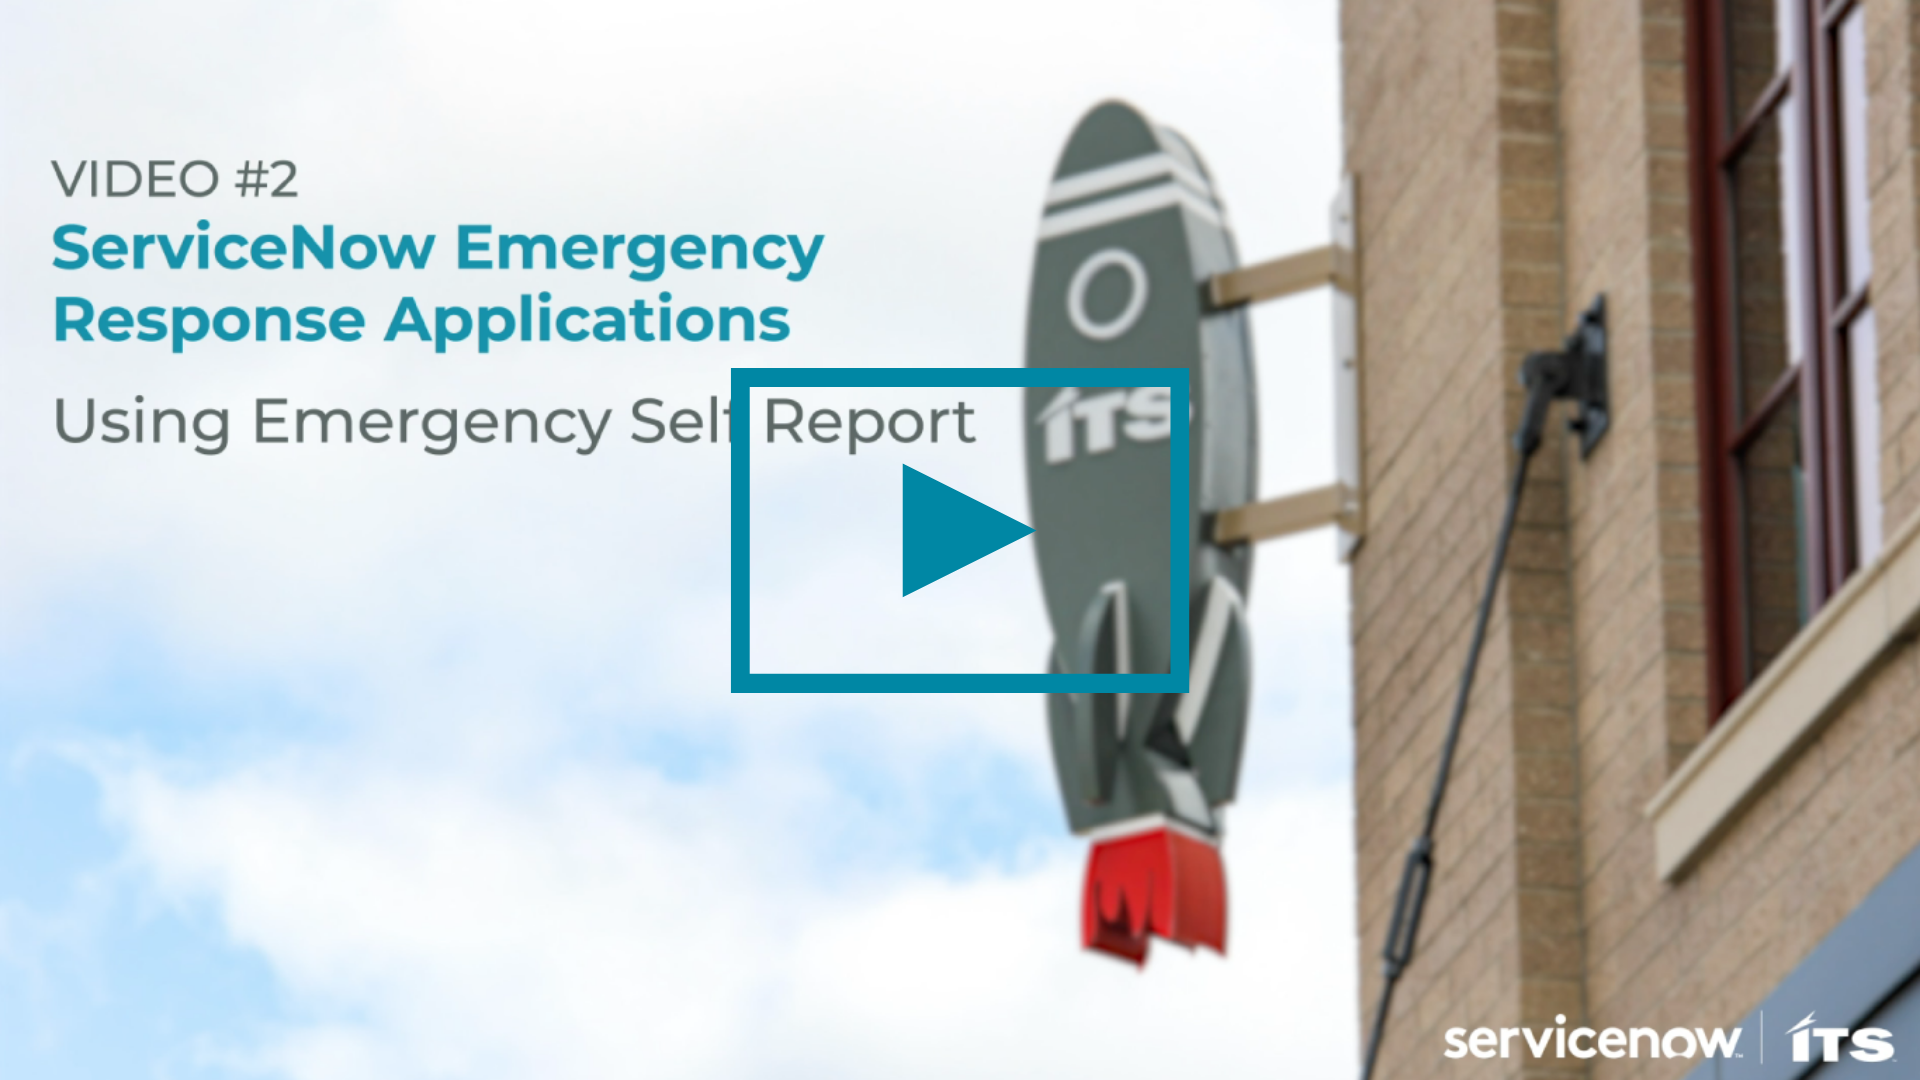 Emergency Self Report